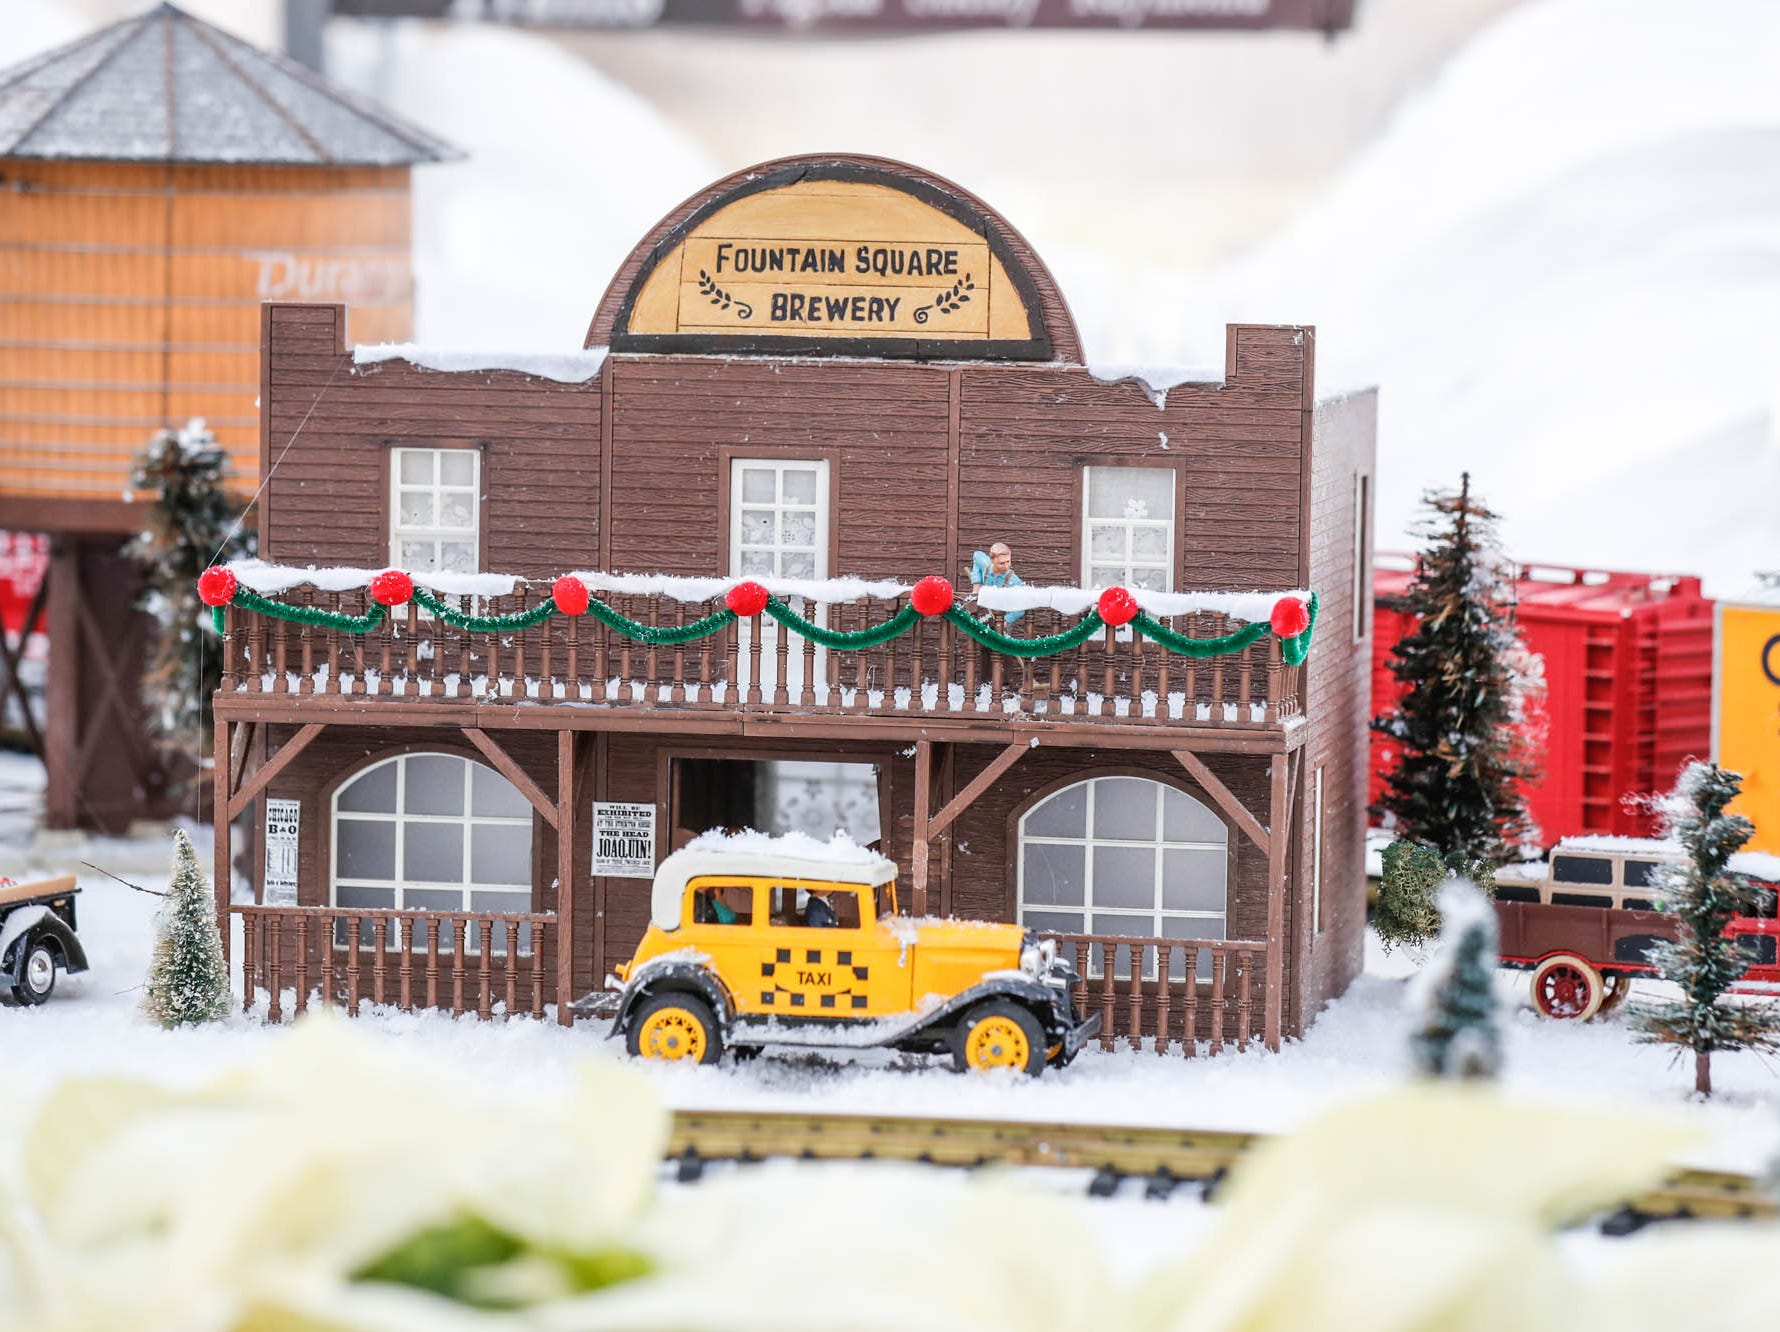 Fountain Square Brewery is depicted in the Conservatory Crossing holiday display at the Garfield Park Conservatory on Saturday, Dec. 29, 2018.